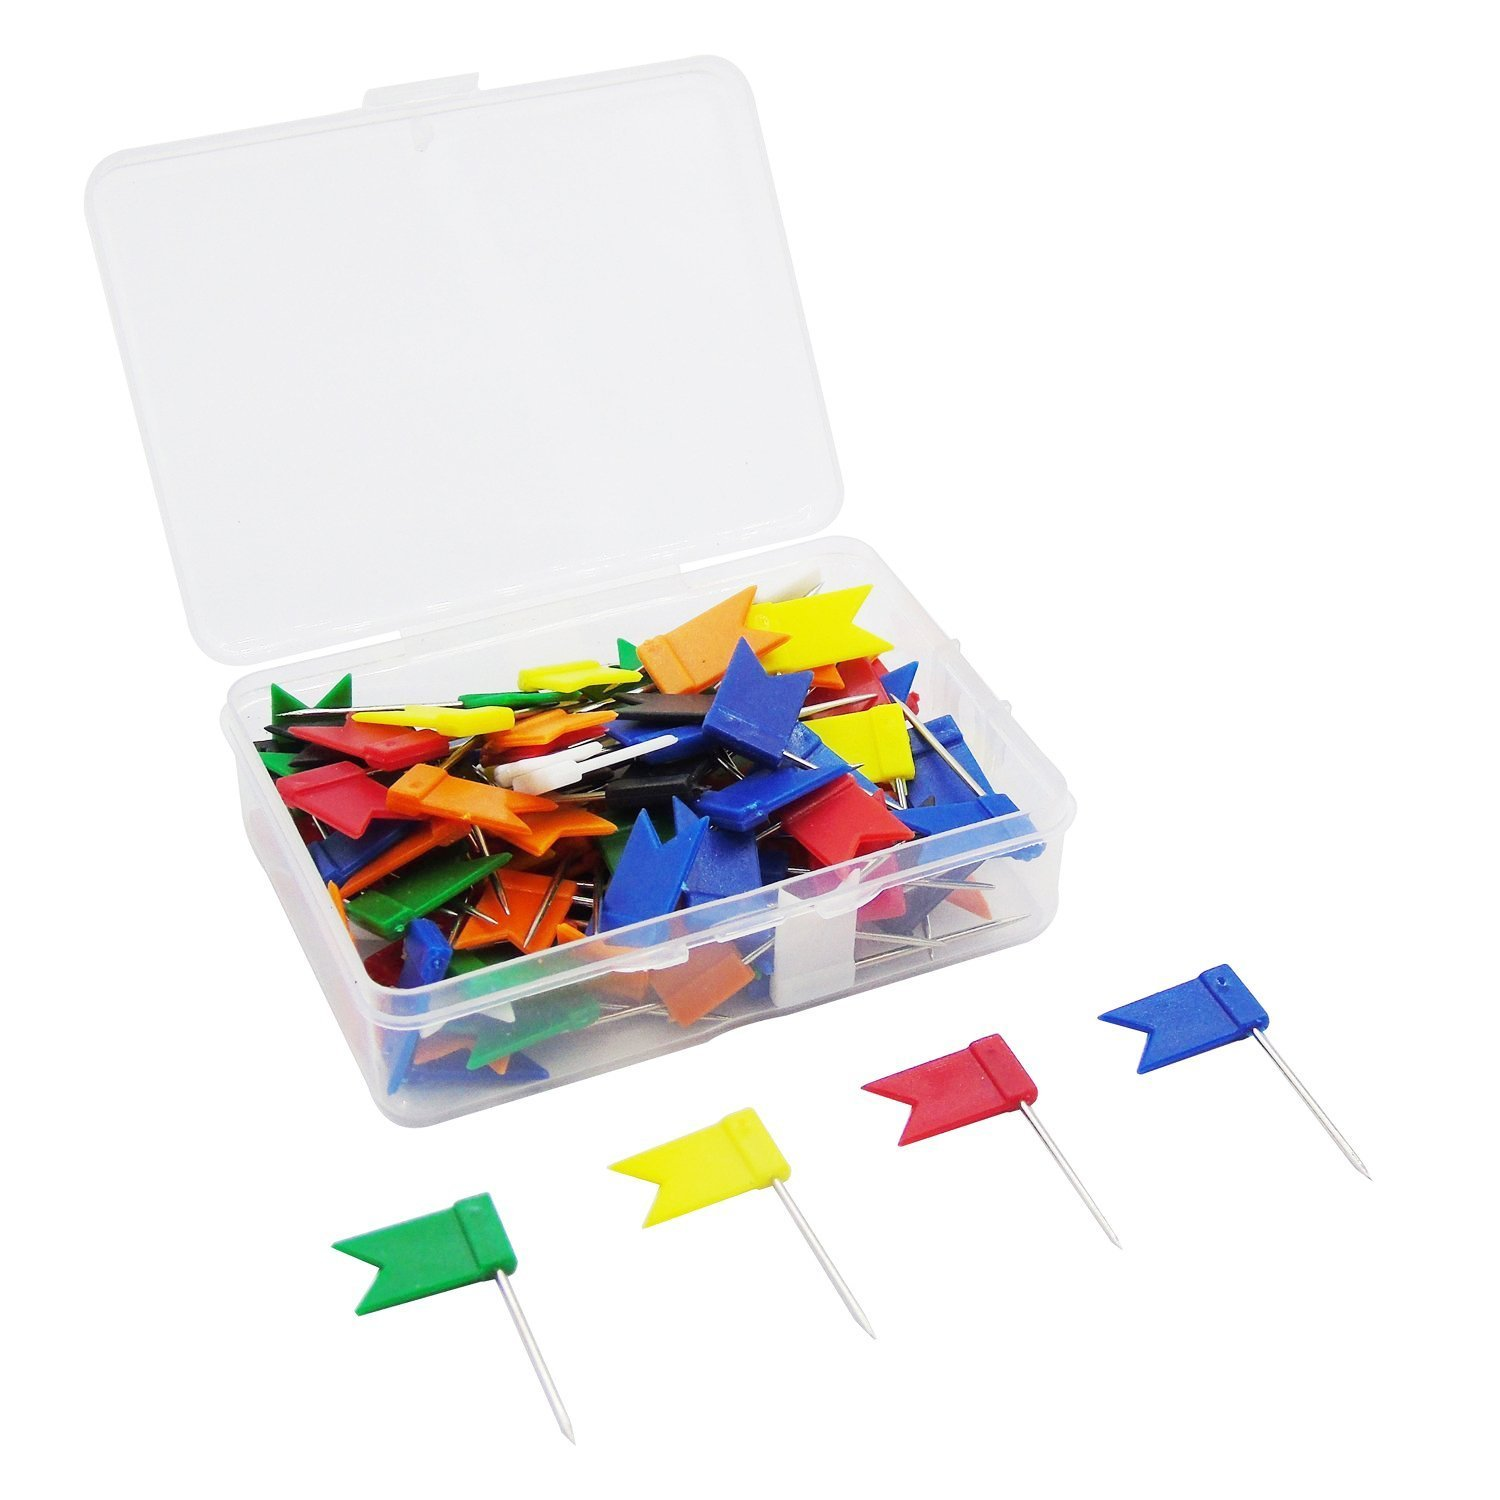 Cisixin 100 Pieces 7 Assorted Colors Map Flag Push Pins, Map Mark, Cork Board Tacks- 25 mm